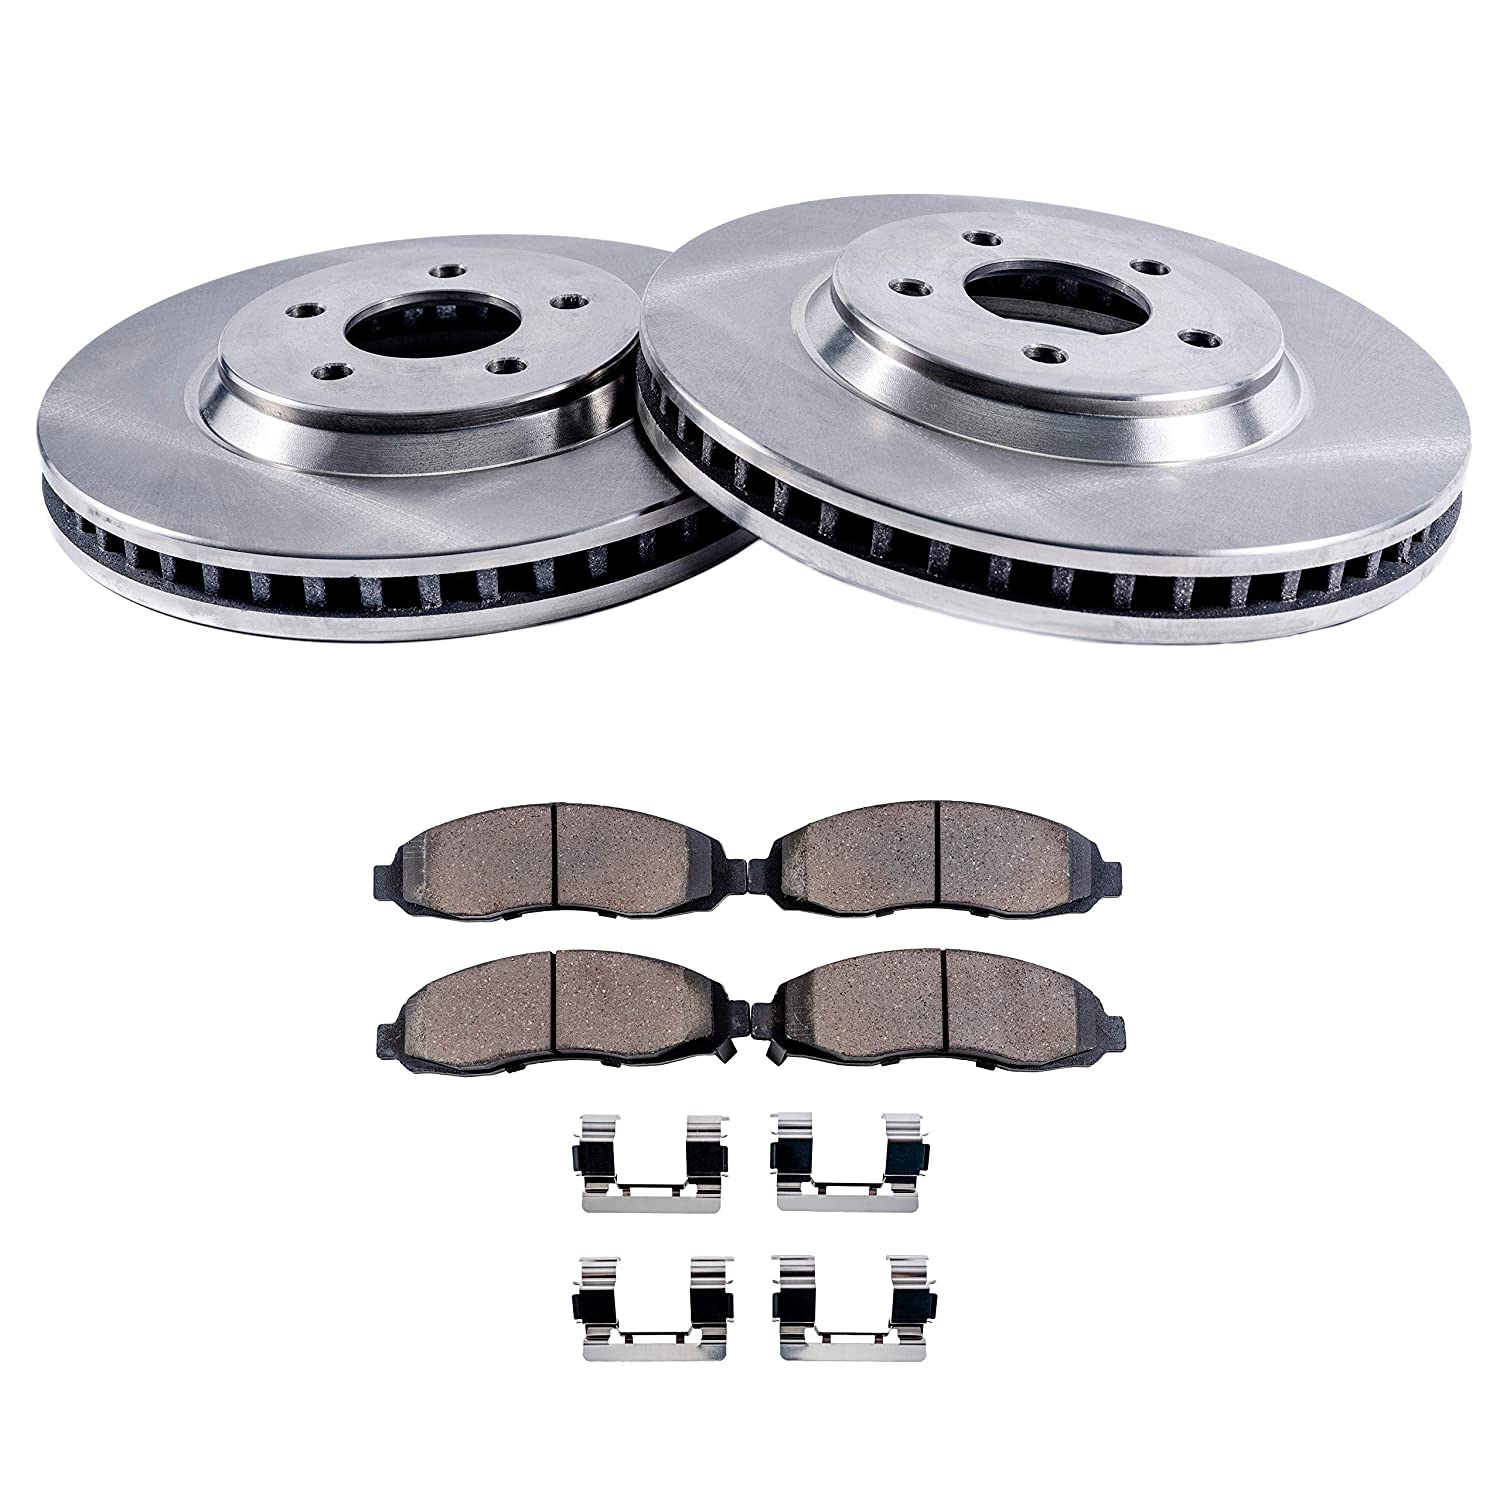 Detroit Axle - Complete Front Brake Rotor Set & Brake Pads w/Clips Hardware Kit Premium GRADE for 2008-2010 Chrysler Town & Country - [2008-2010 Dodge Grand Caravan/Journey] - 2009-2010 VW Routan